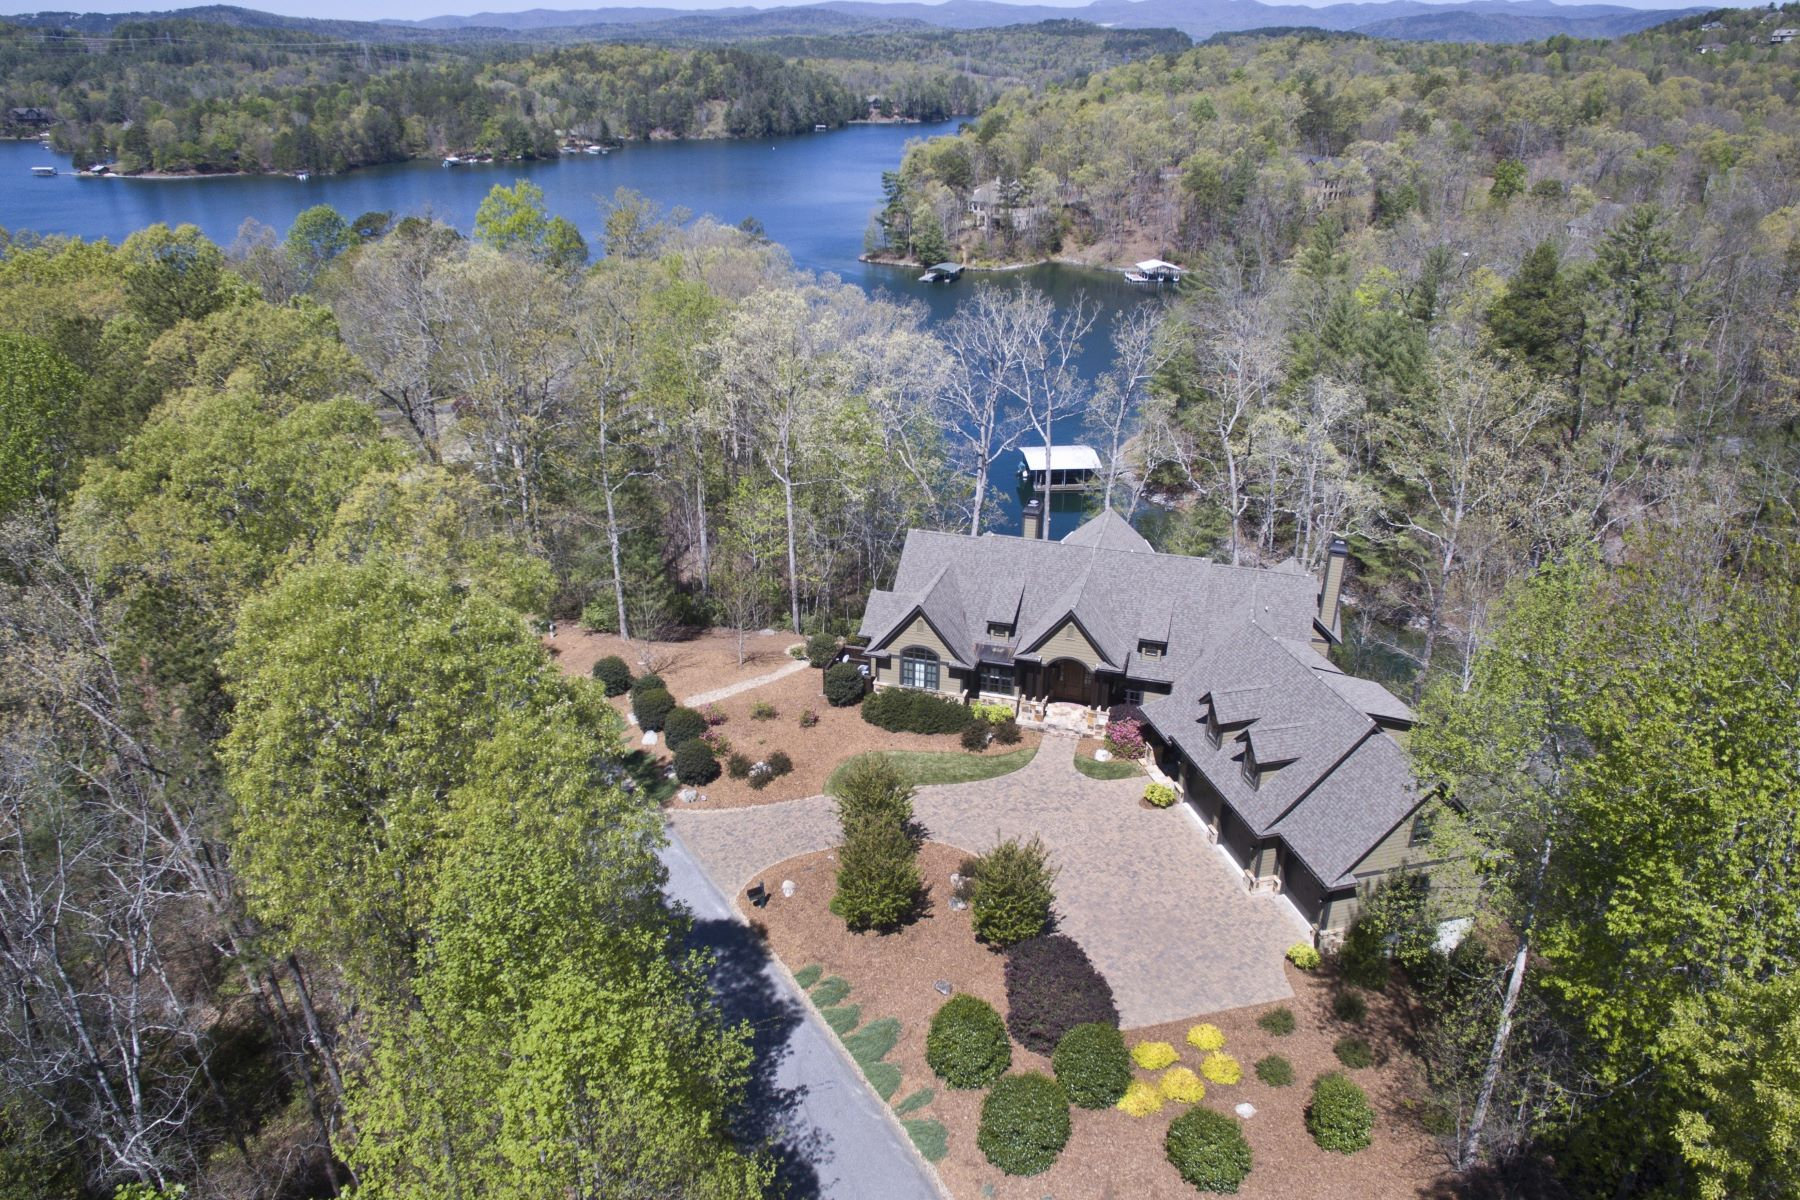 Maison unifamiliale pour l Vente à Casually Elegant Vineyards Waterfront Retreat 110 Red Buckeye Trail The Cliffs At Keowee Vineyards, Sunset, Caroline Du Sud, 29685 États-Unis